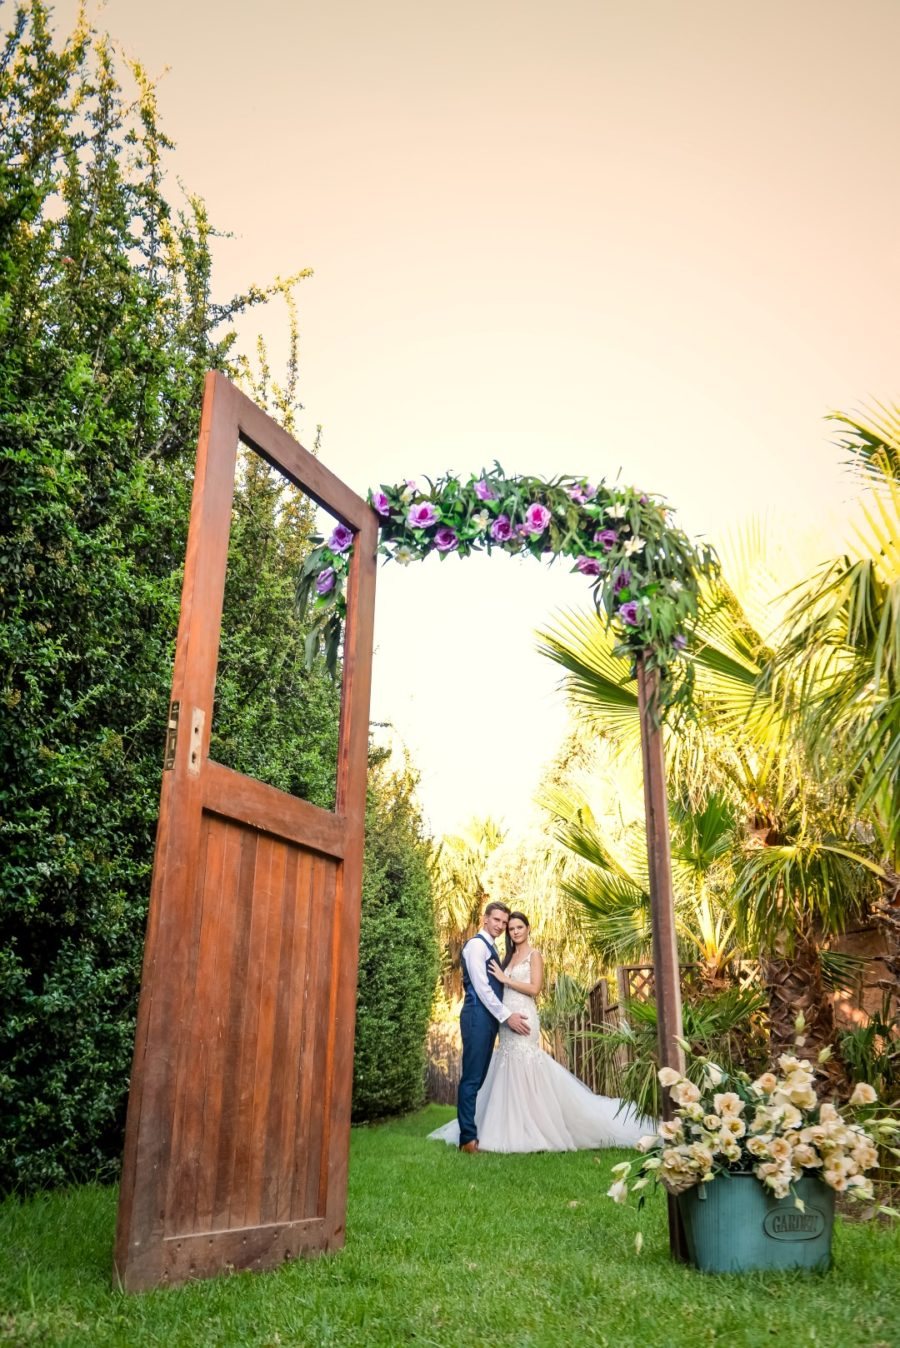 Tarlton Gardens, Rustic farm wedding venue